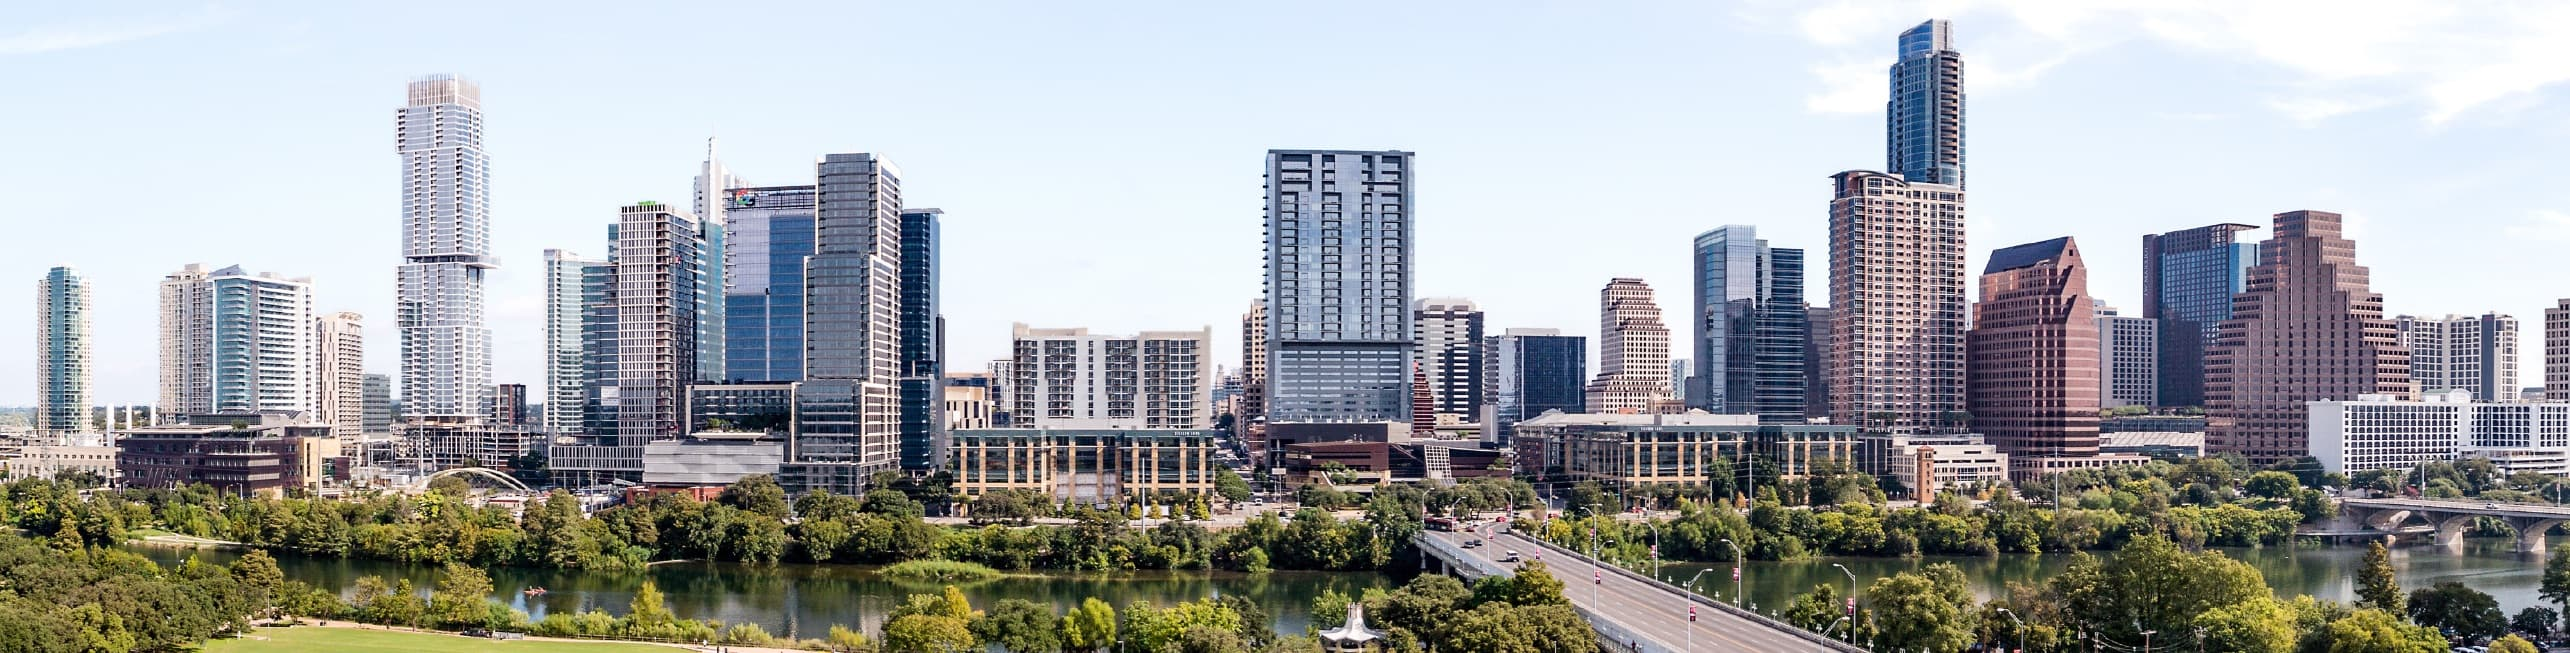 Beautiful image of Austin Texas's incredible skyline